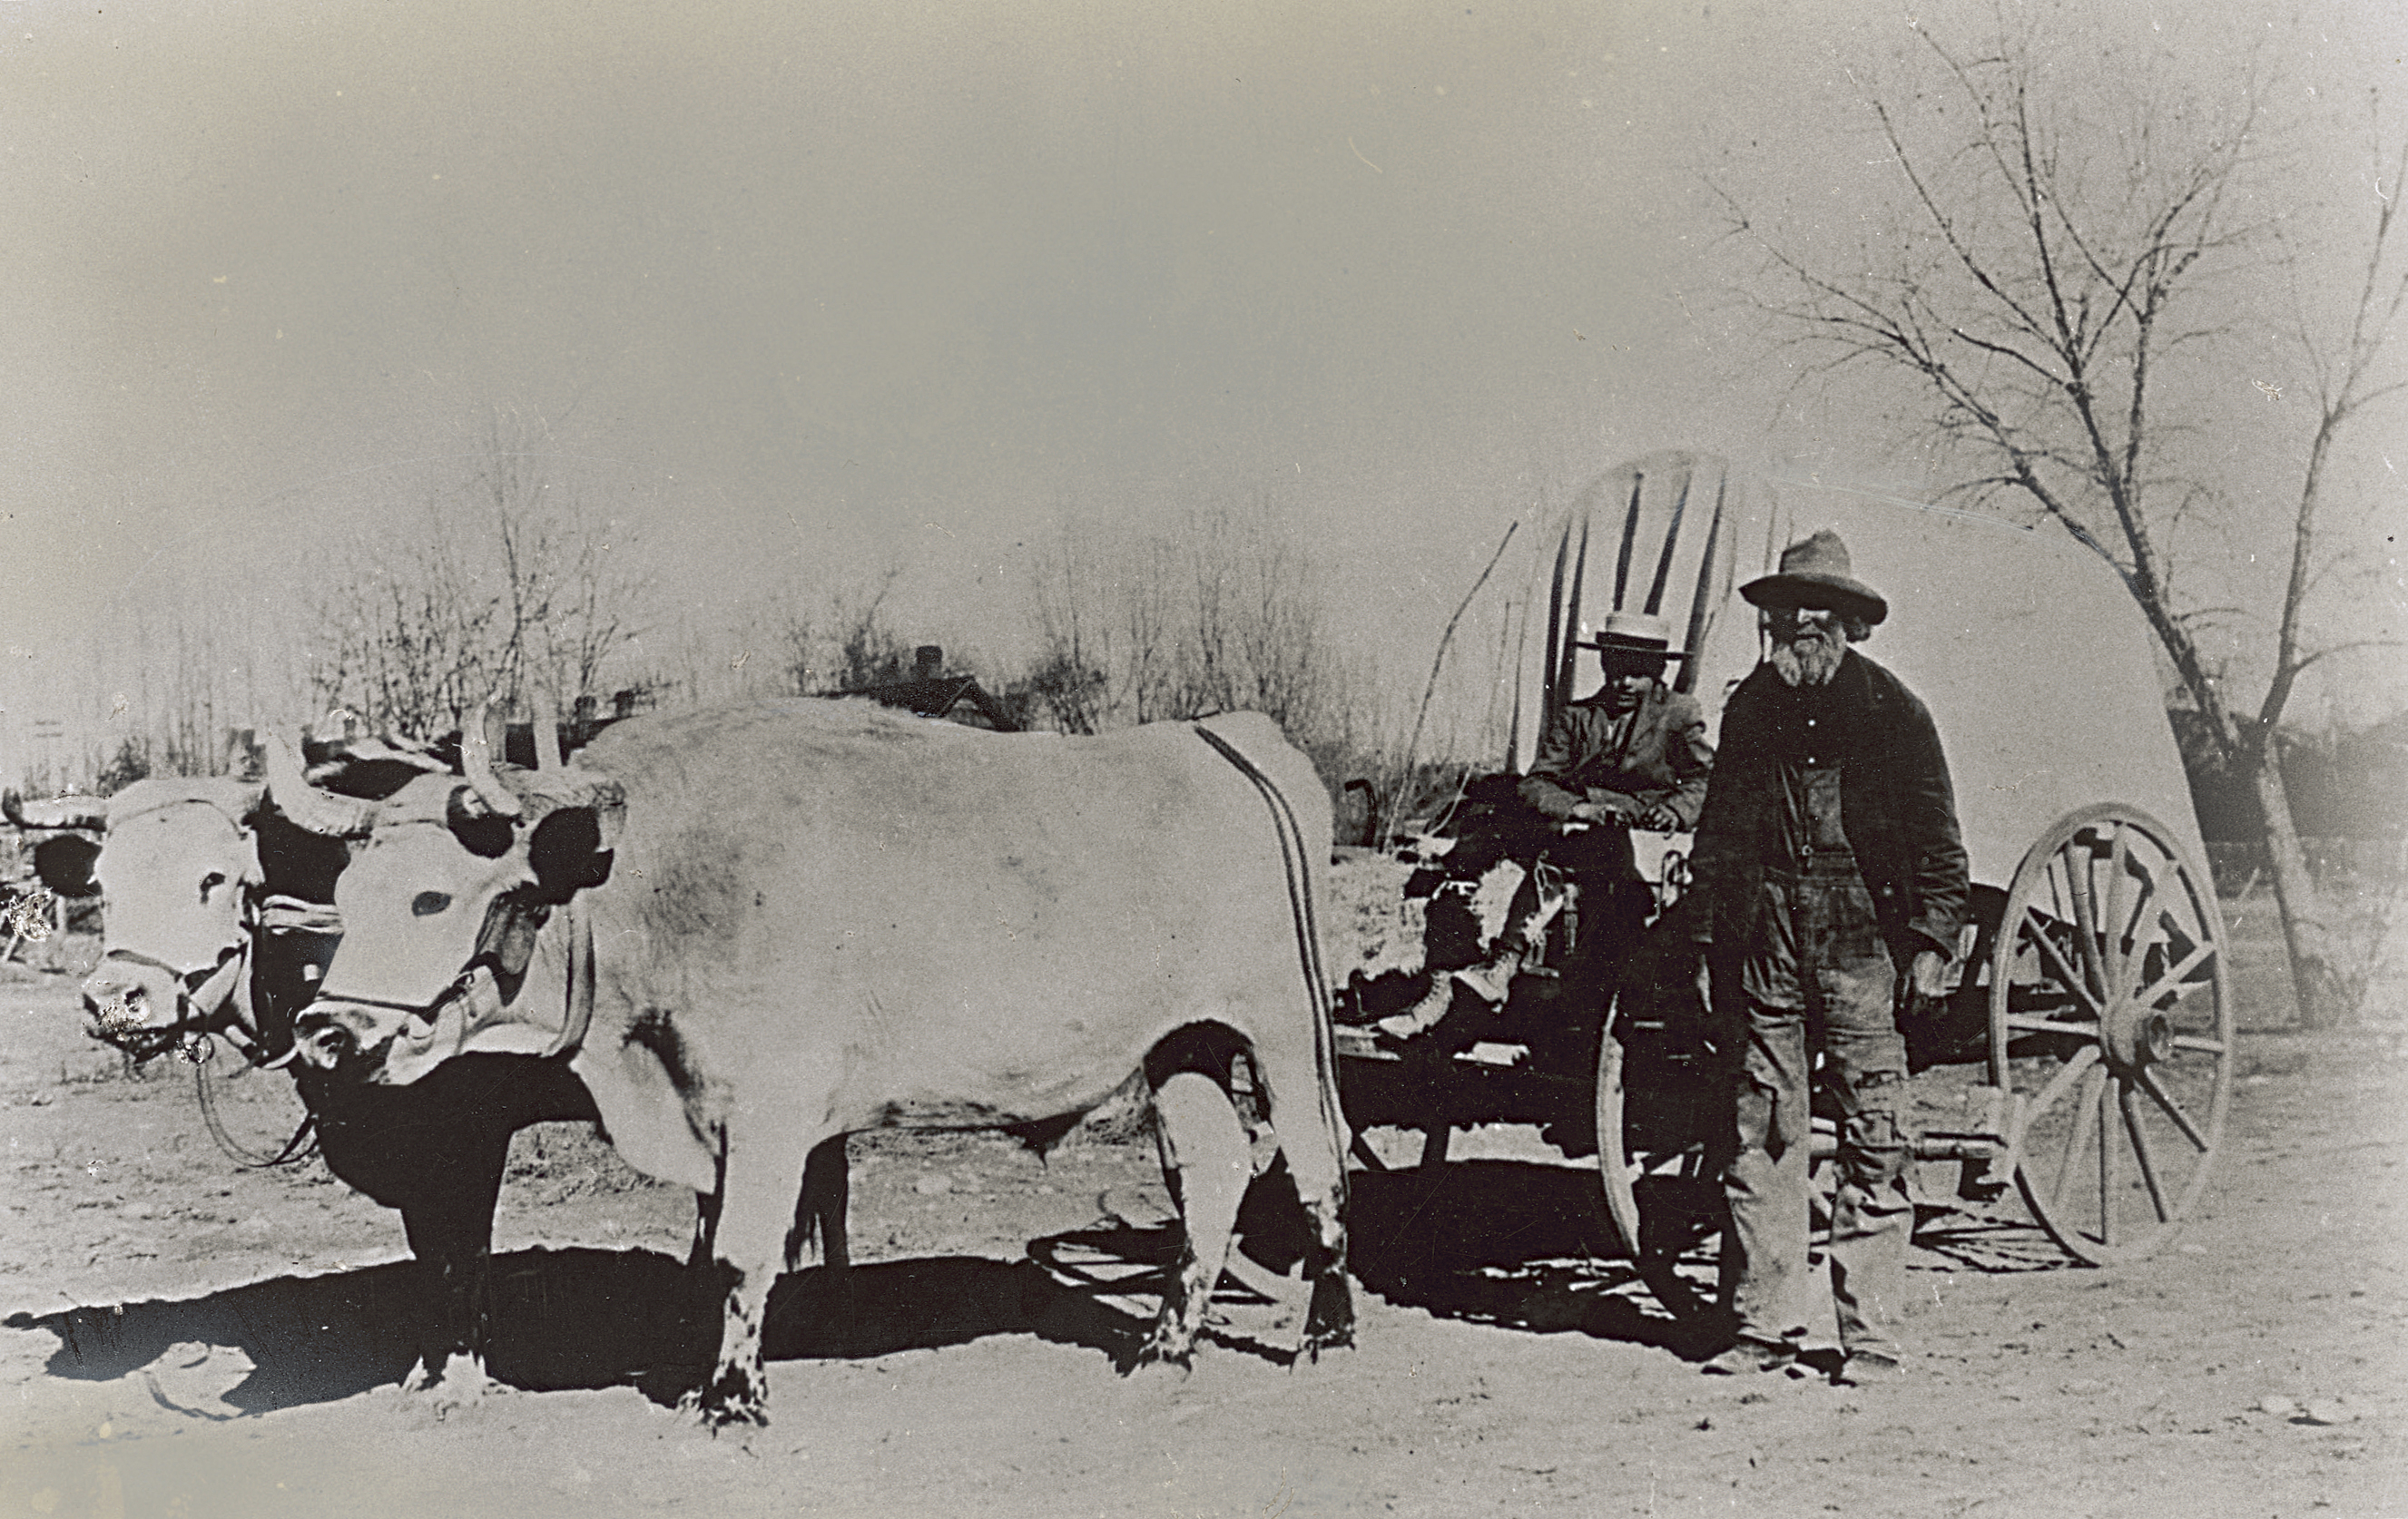 A historical photograph showing a team of oxen pulling a small covered wagon.